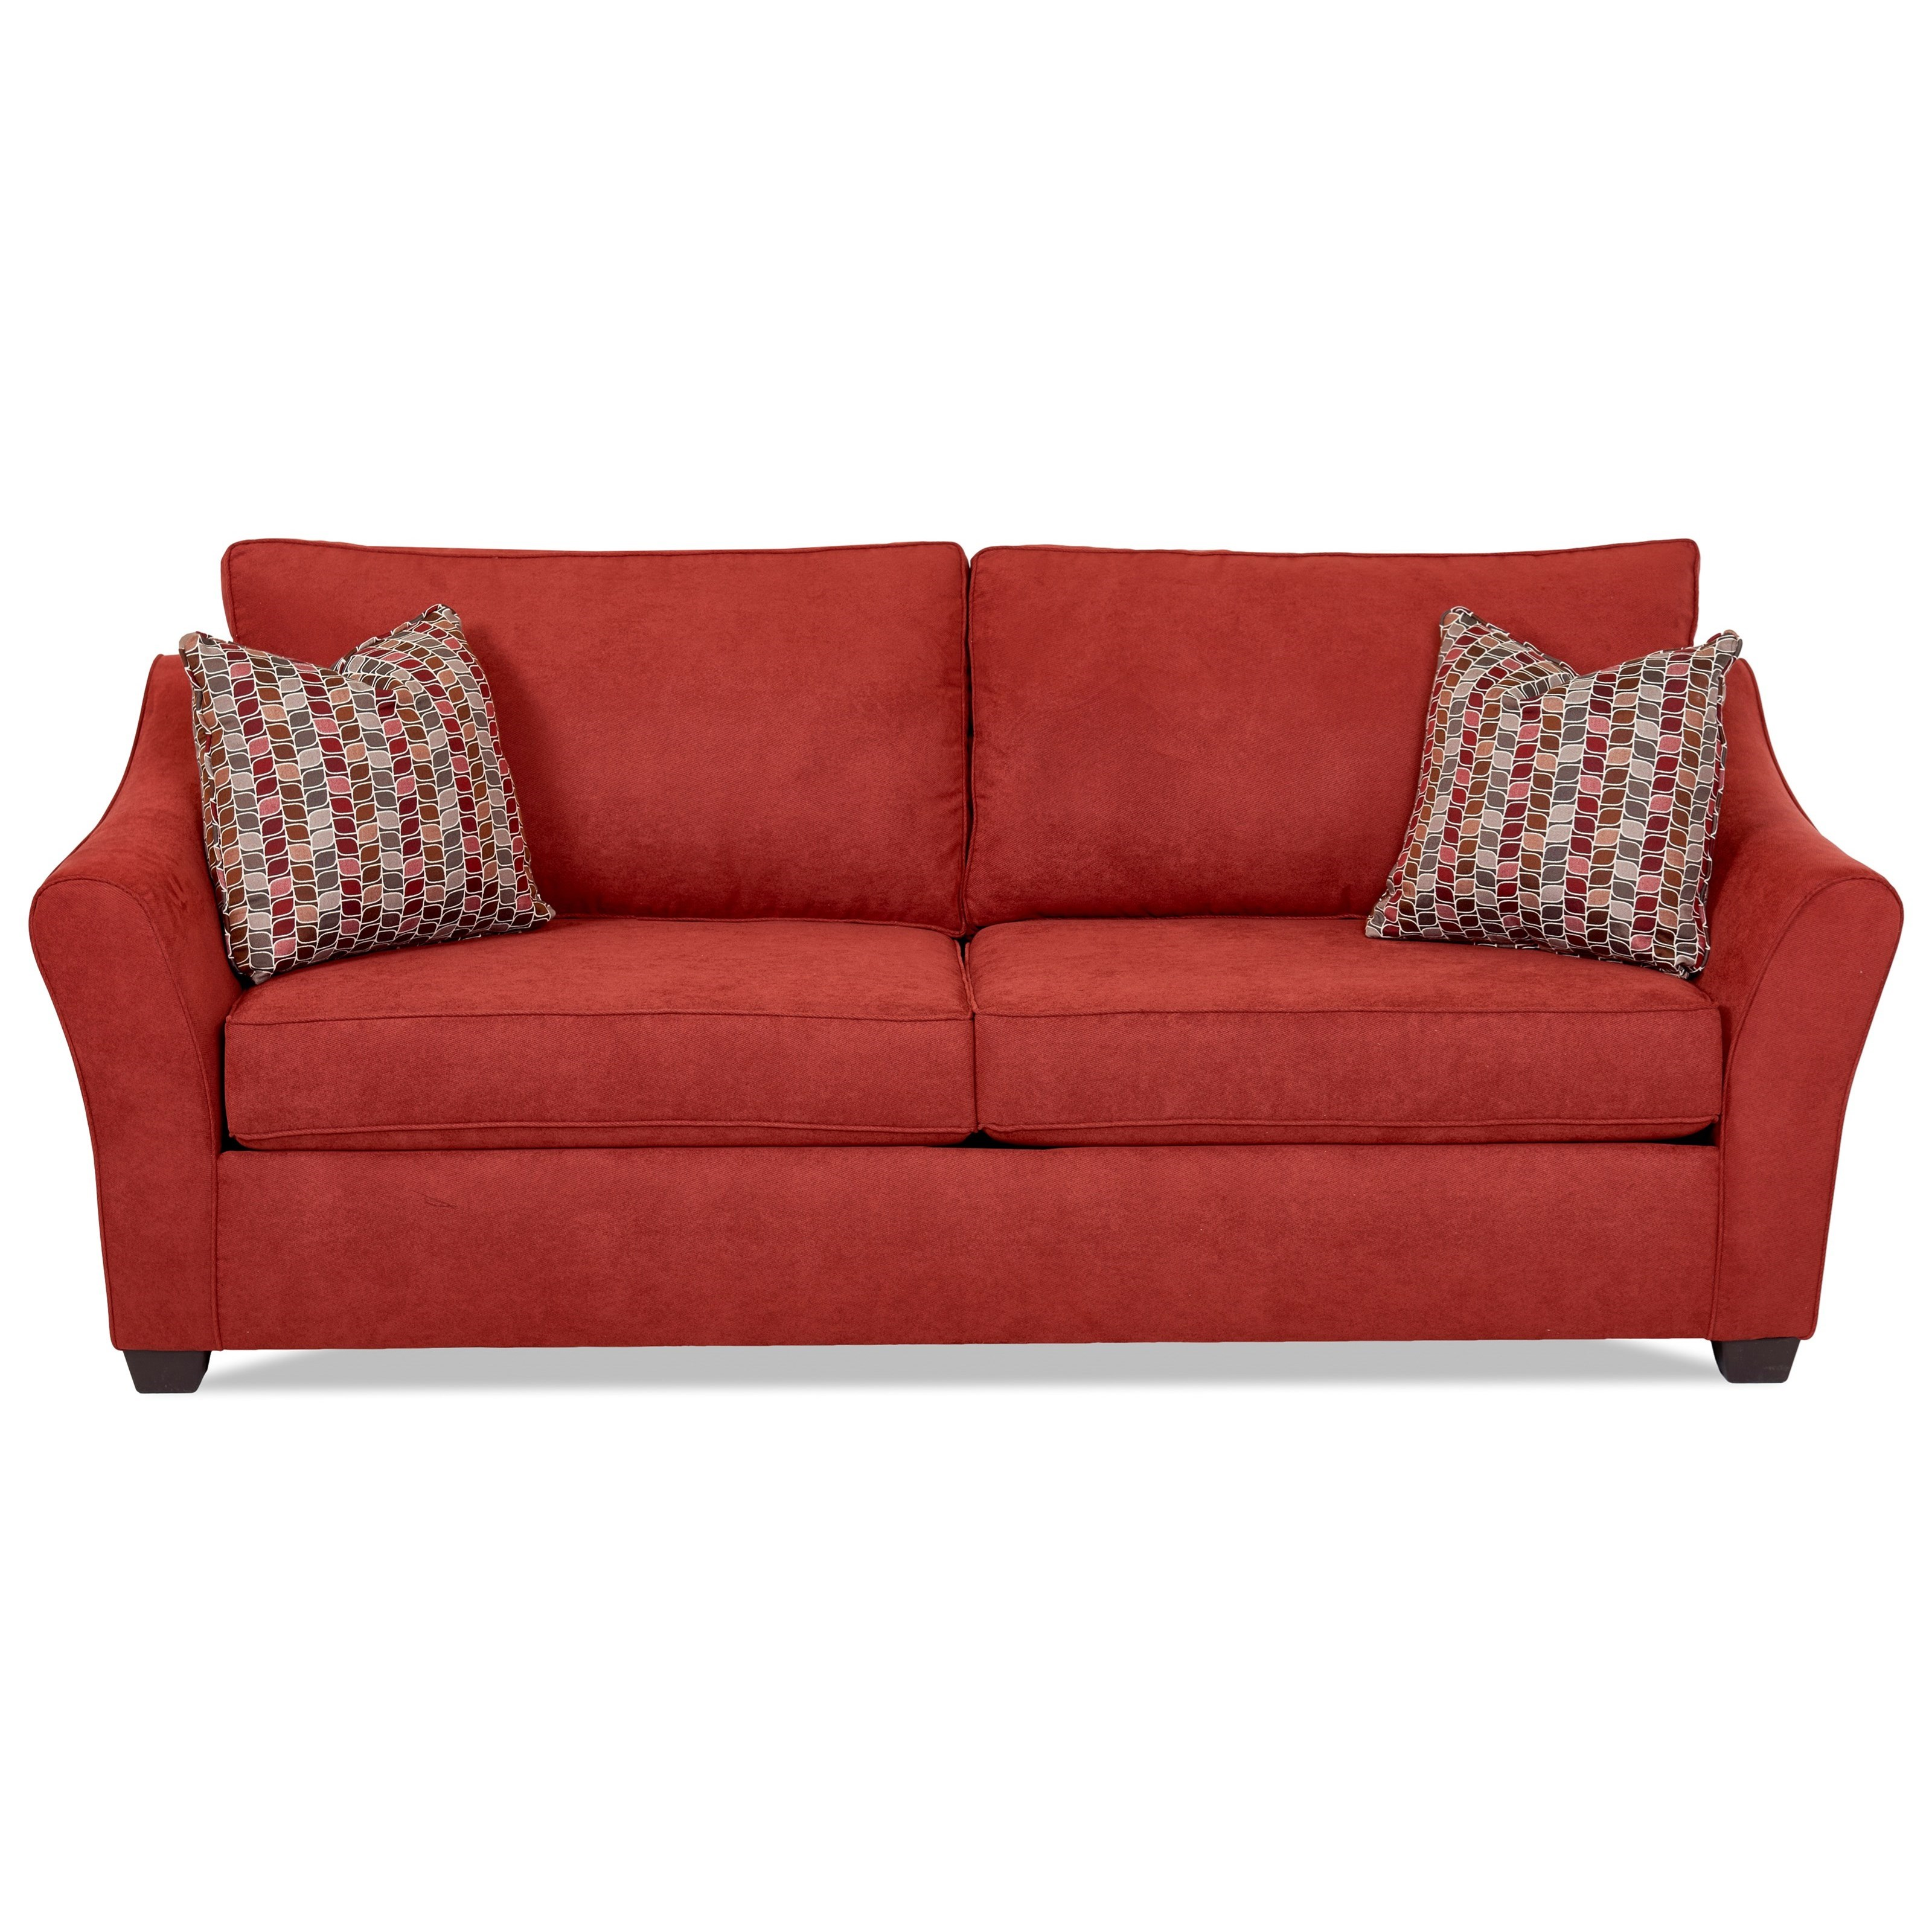 Klaussner Linville Sofa - Item Number: K80400 S-WILLOW MERLOT